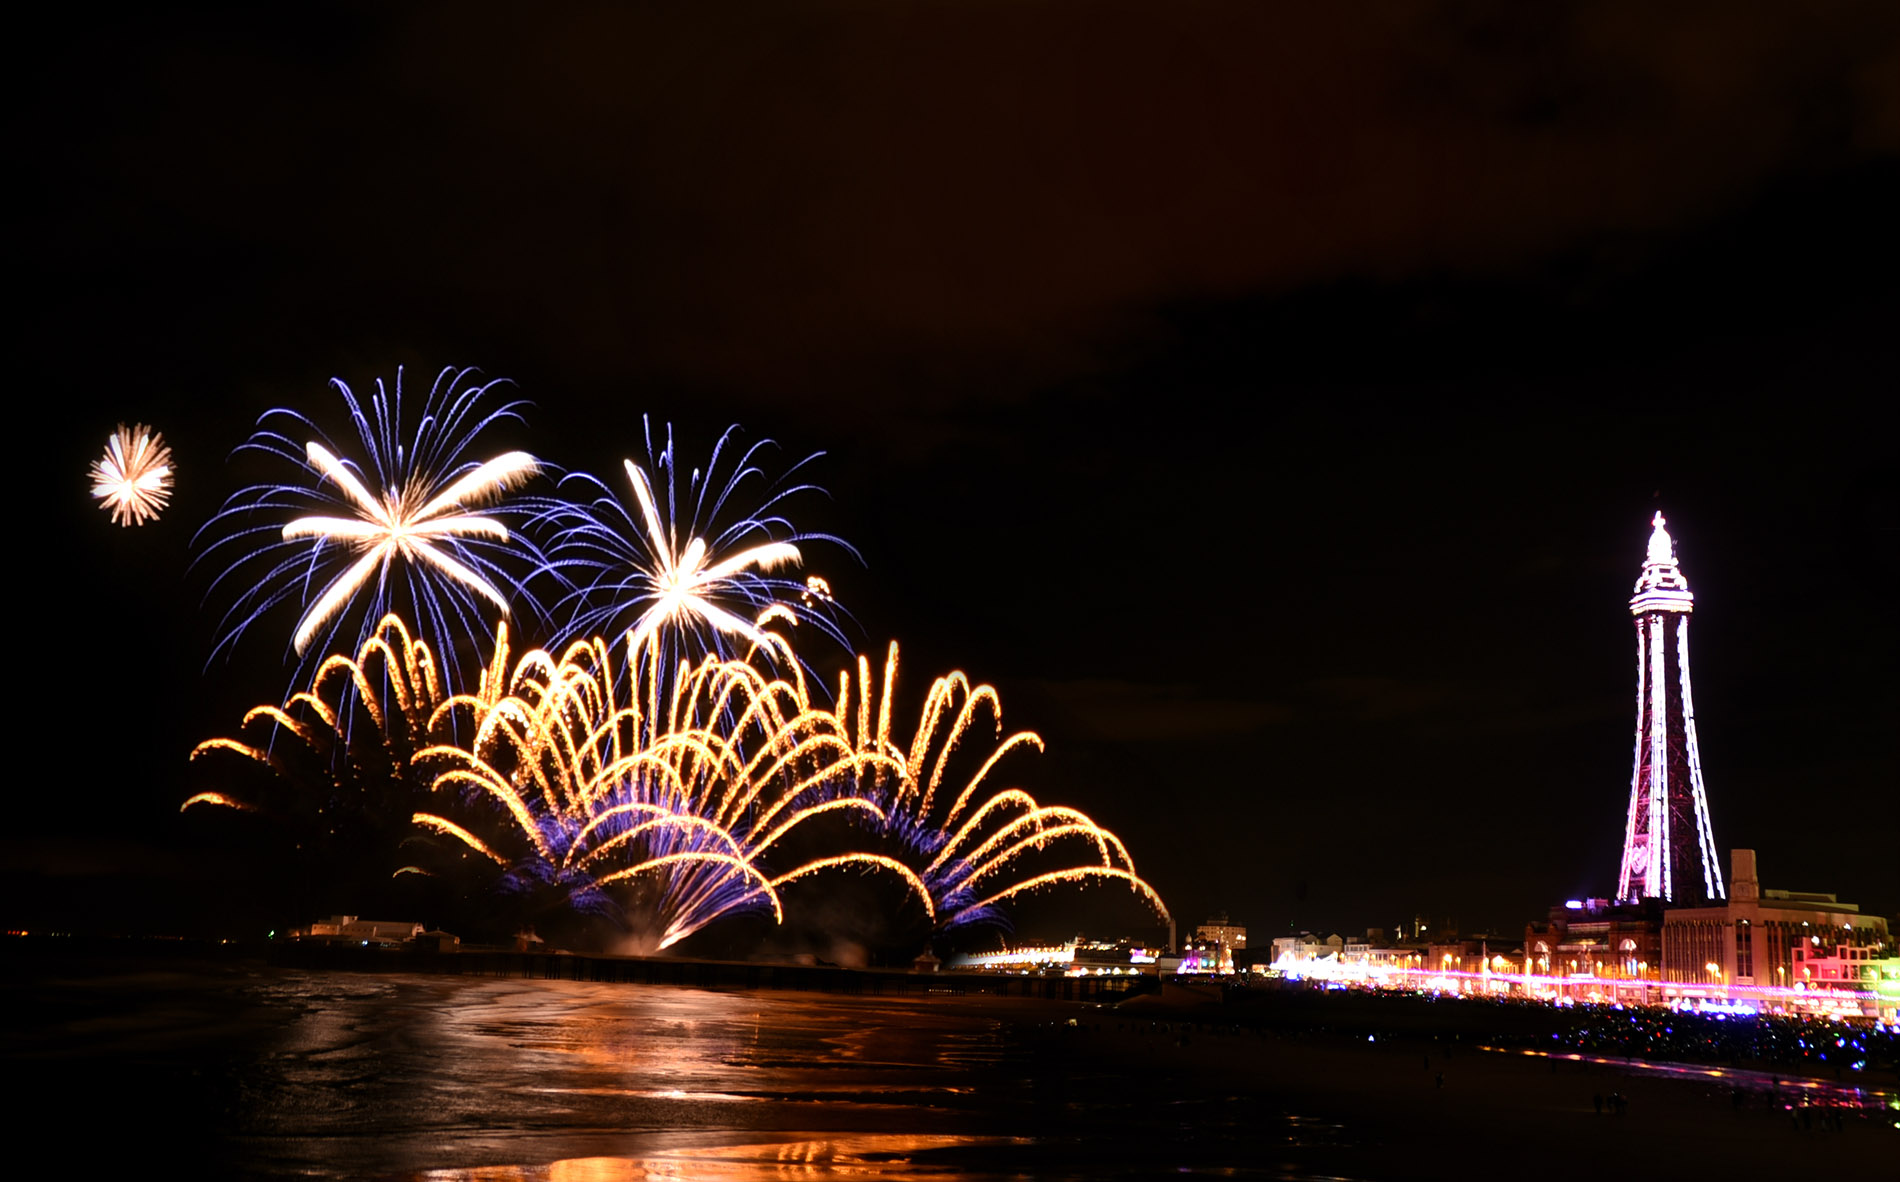 titanium-fireworks-gallery-blackpool-october-2016-2-1900px